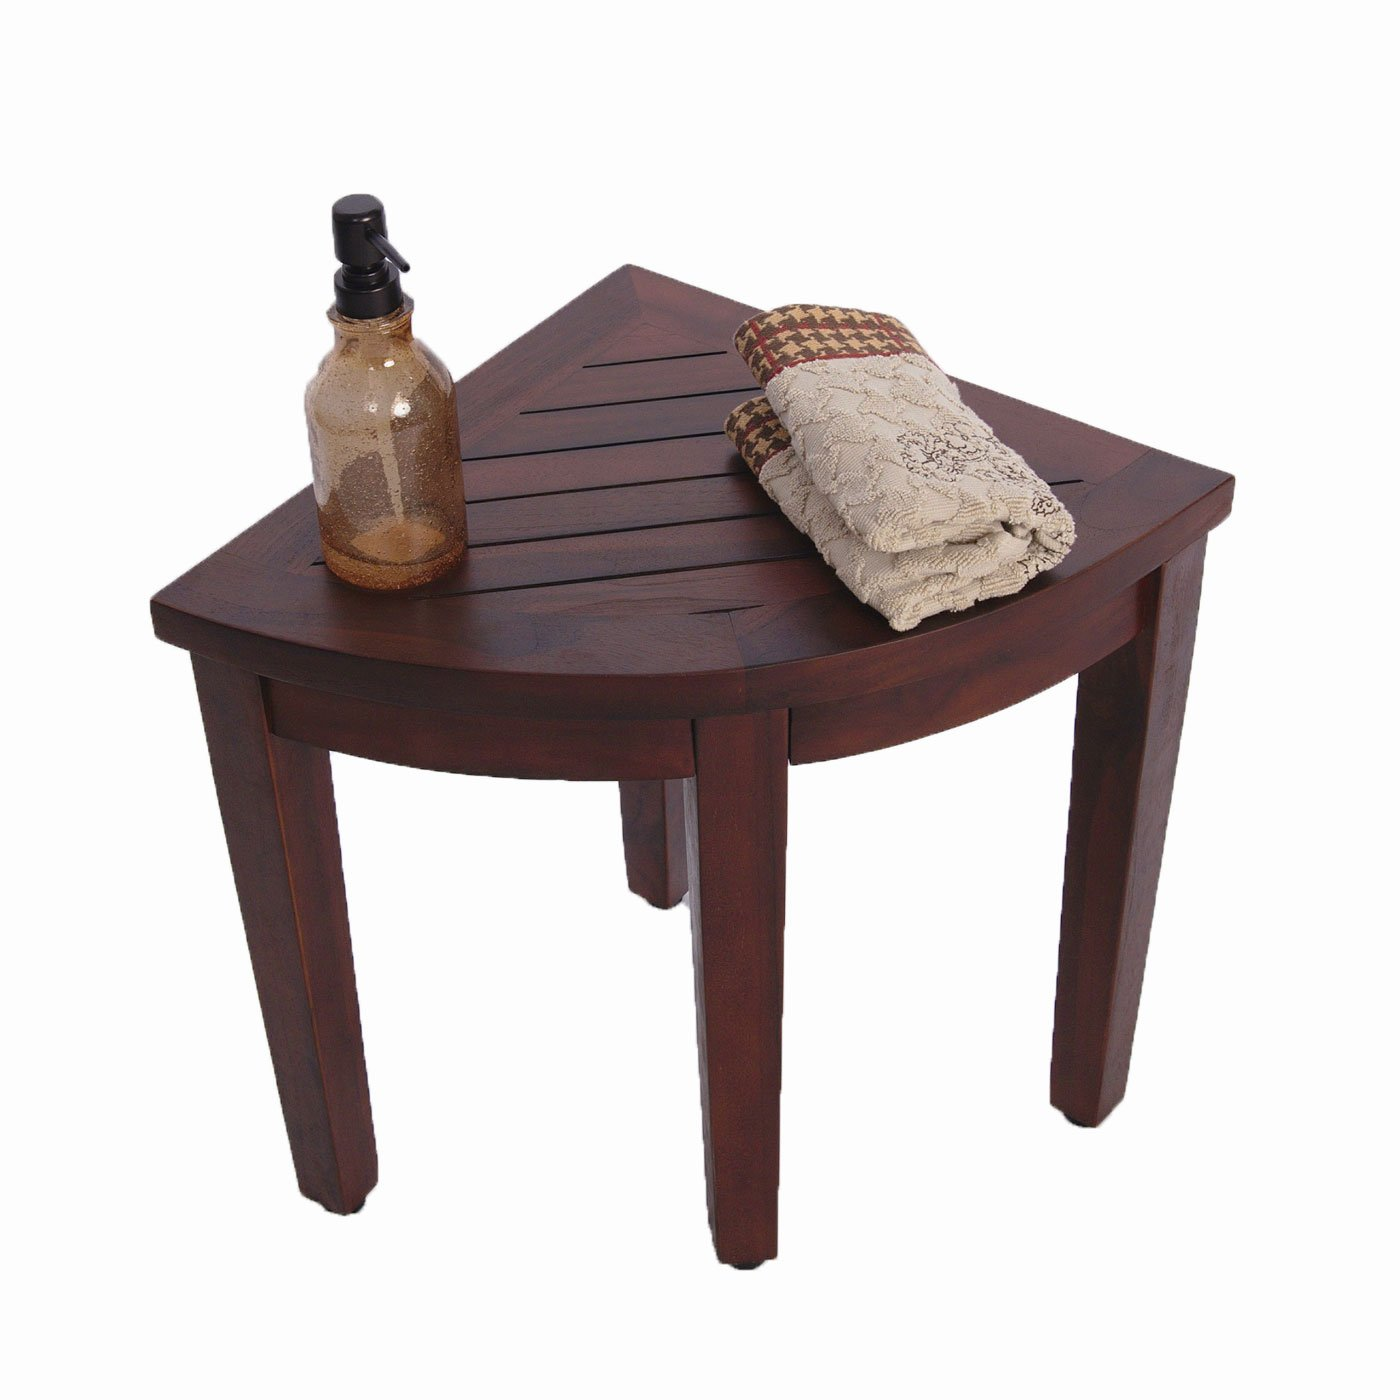 Amazon.com Oasis Bathroom Teak Corner Shower Seat Stool Chair Bench- Sitting Storage or Foot Rest Health u0026 Personal Care  sc 1 st  Amazon.com & Amazon.com: Oasis Bathroom Teak Corner Shower Seat Stool Chair ... islam-shia.org